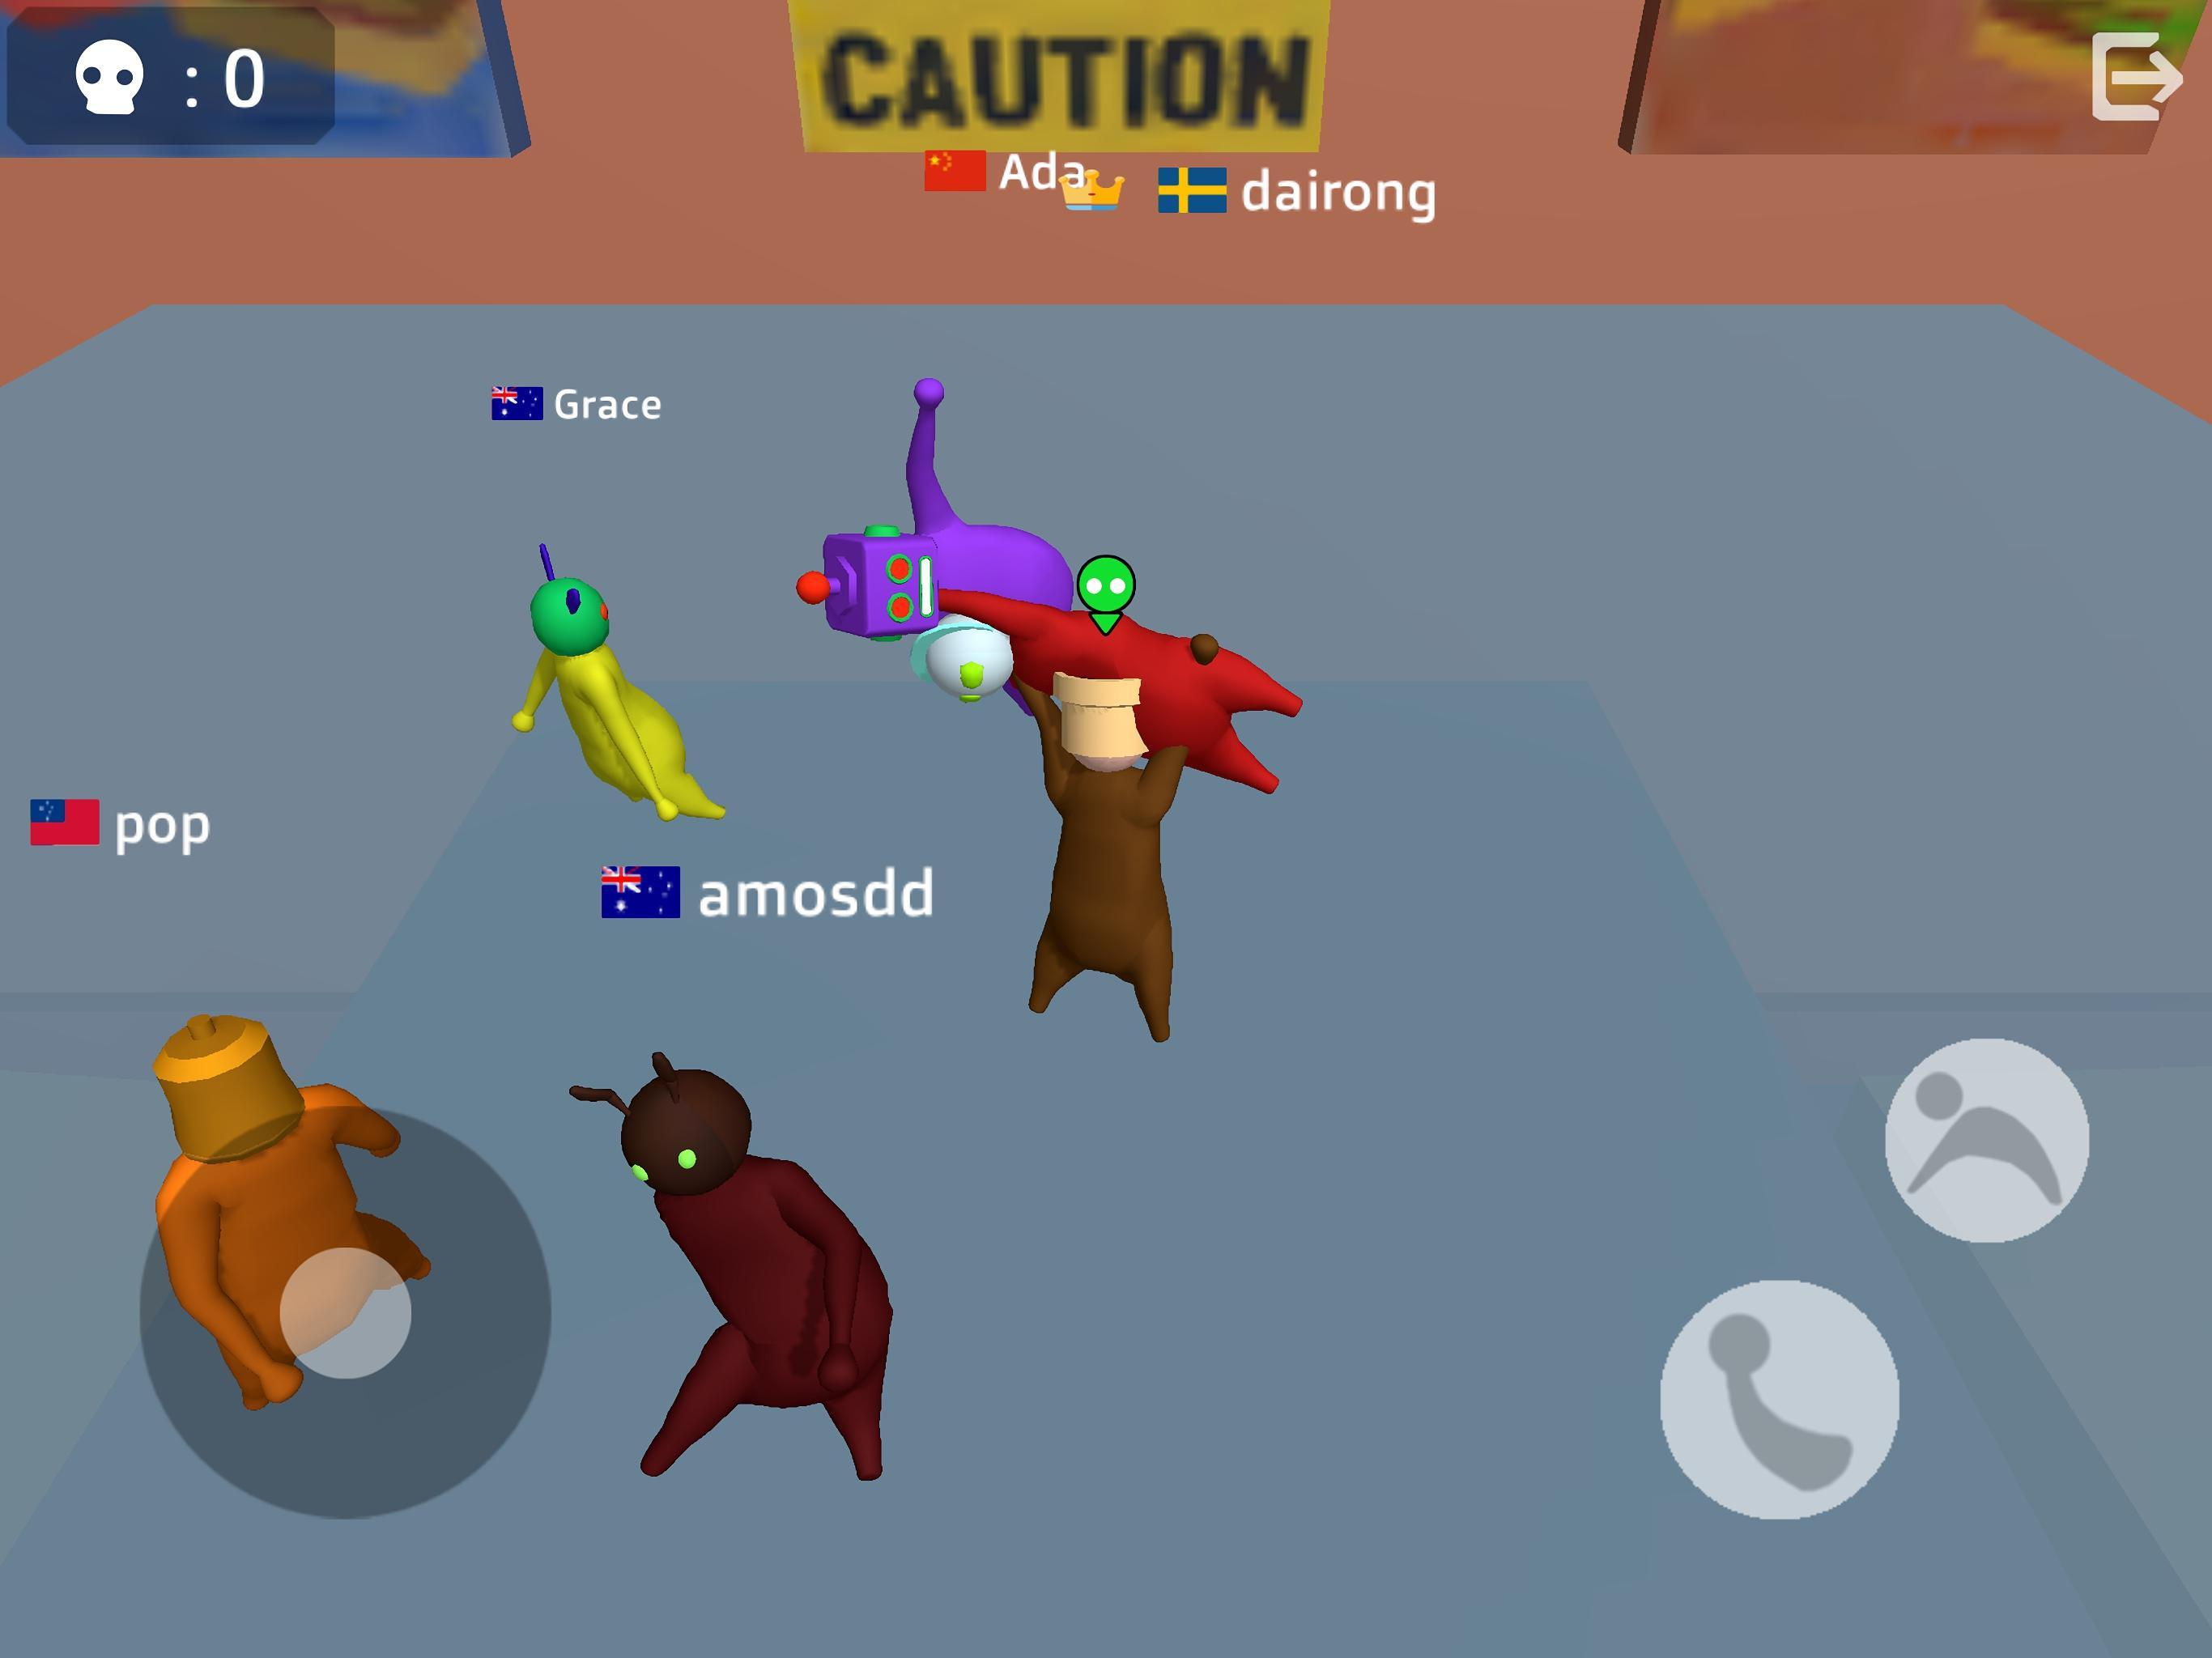 Noodleman.io - Fight Party Games 3.3 Screenshot 21